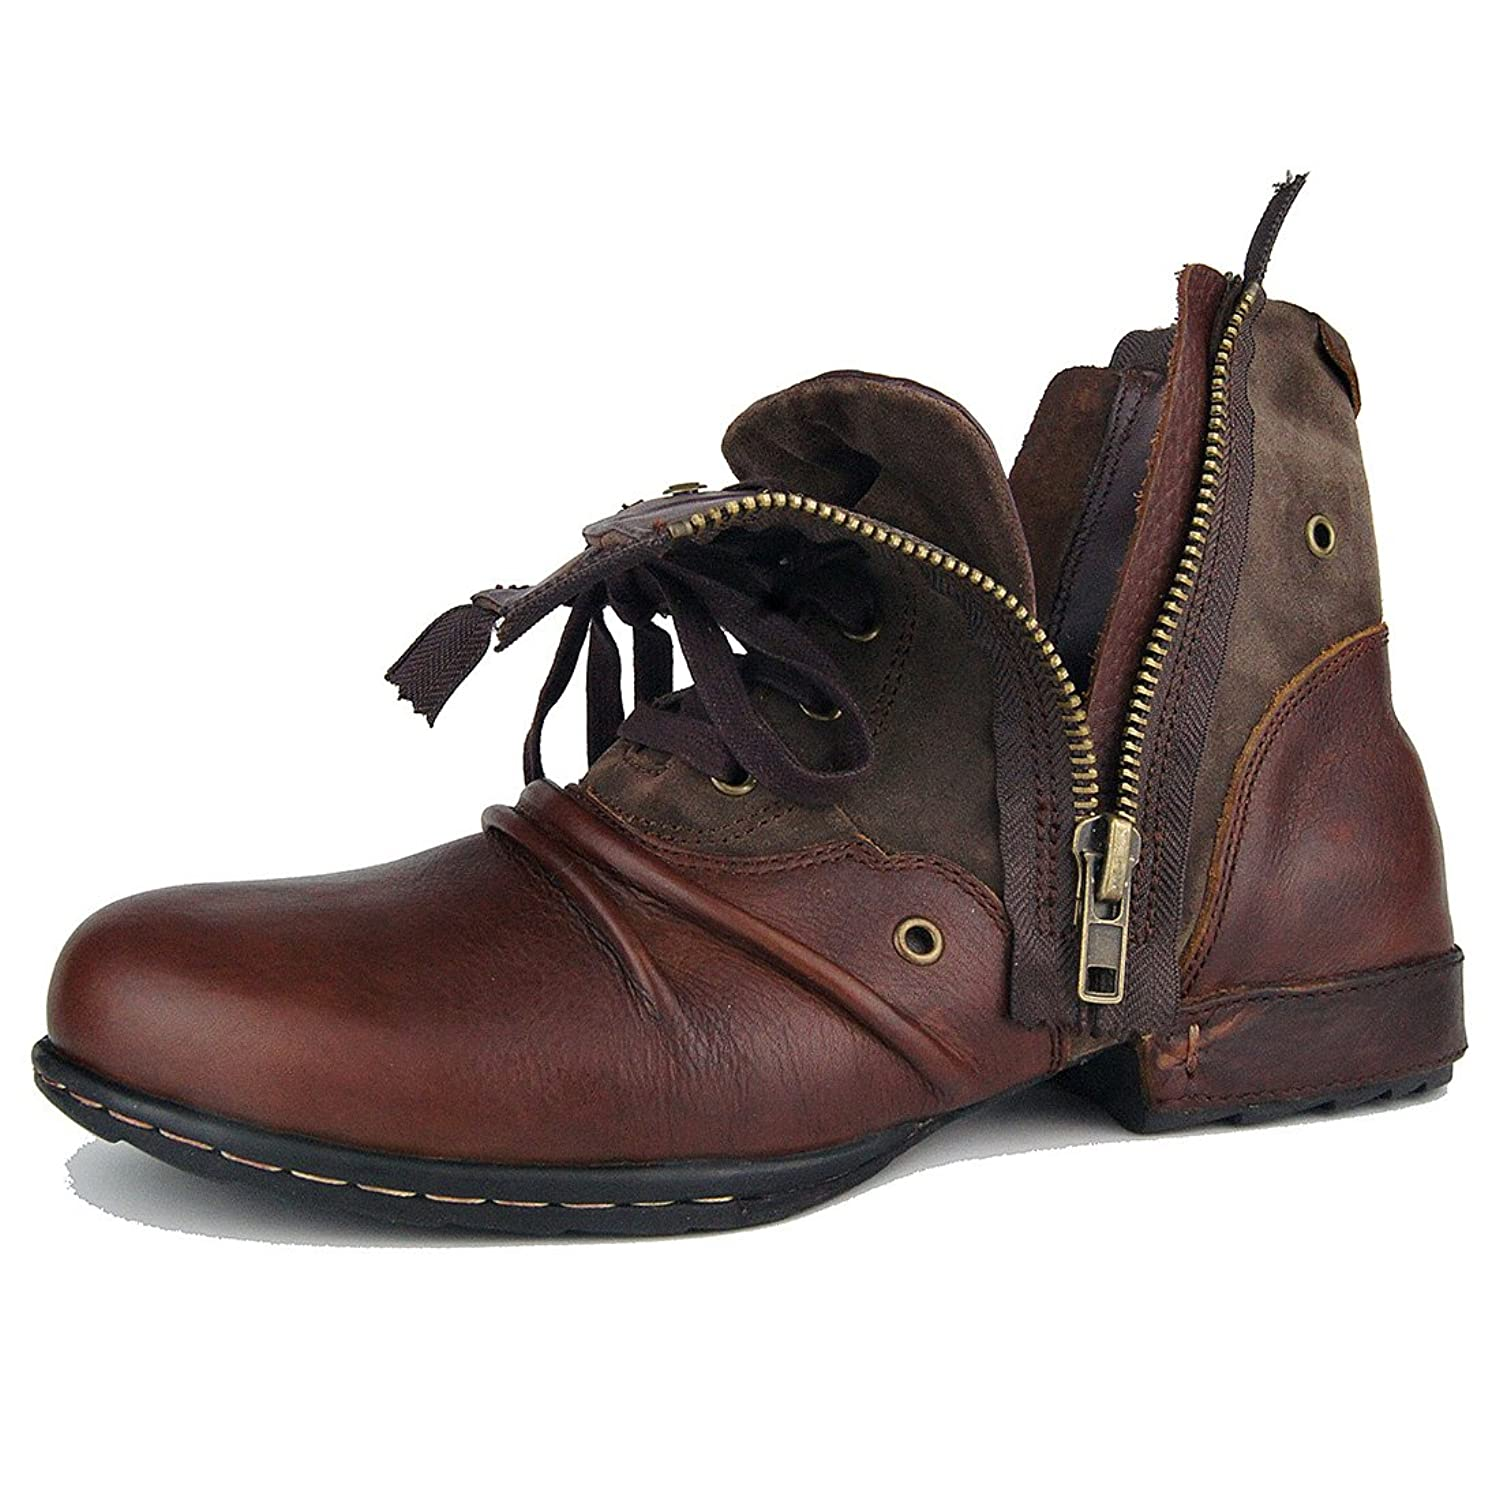 Leather Chukka Boots For Men Fashion Zipper-up Boots Casual Shoes By OTTO  ZONE OZ